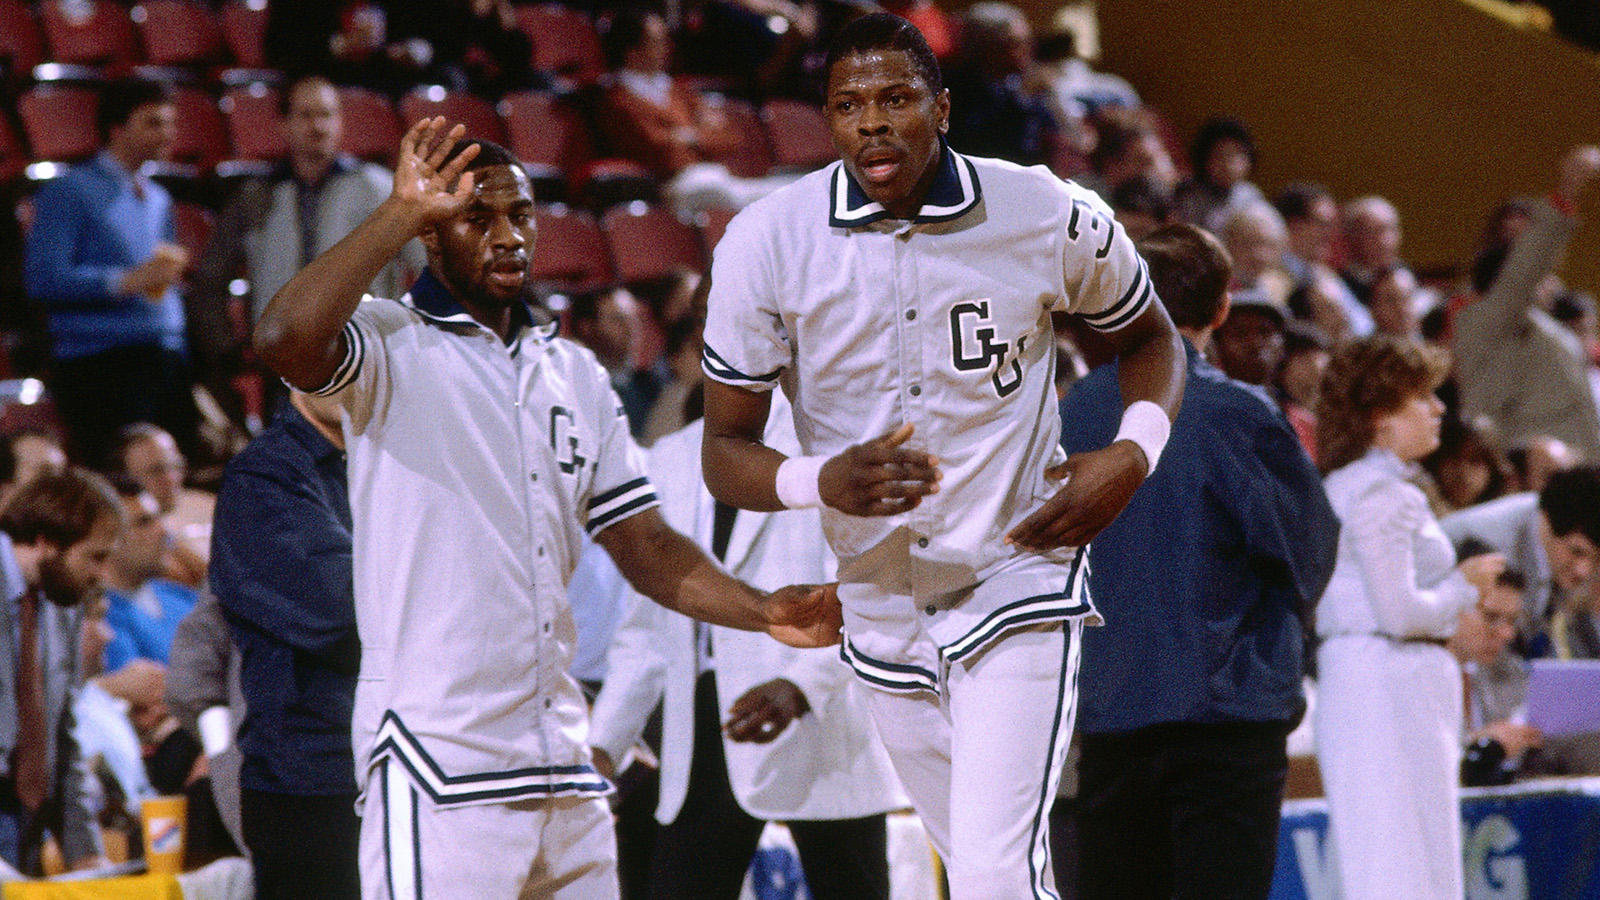 Patrick Ewing was the Number 1 pick out of Georgetown.